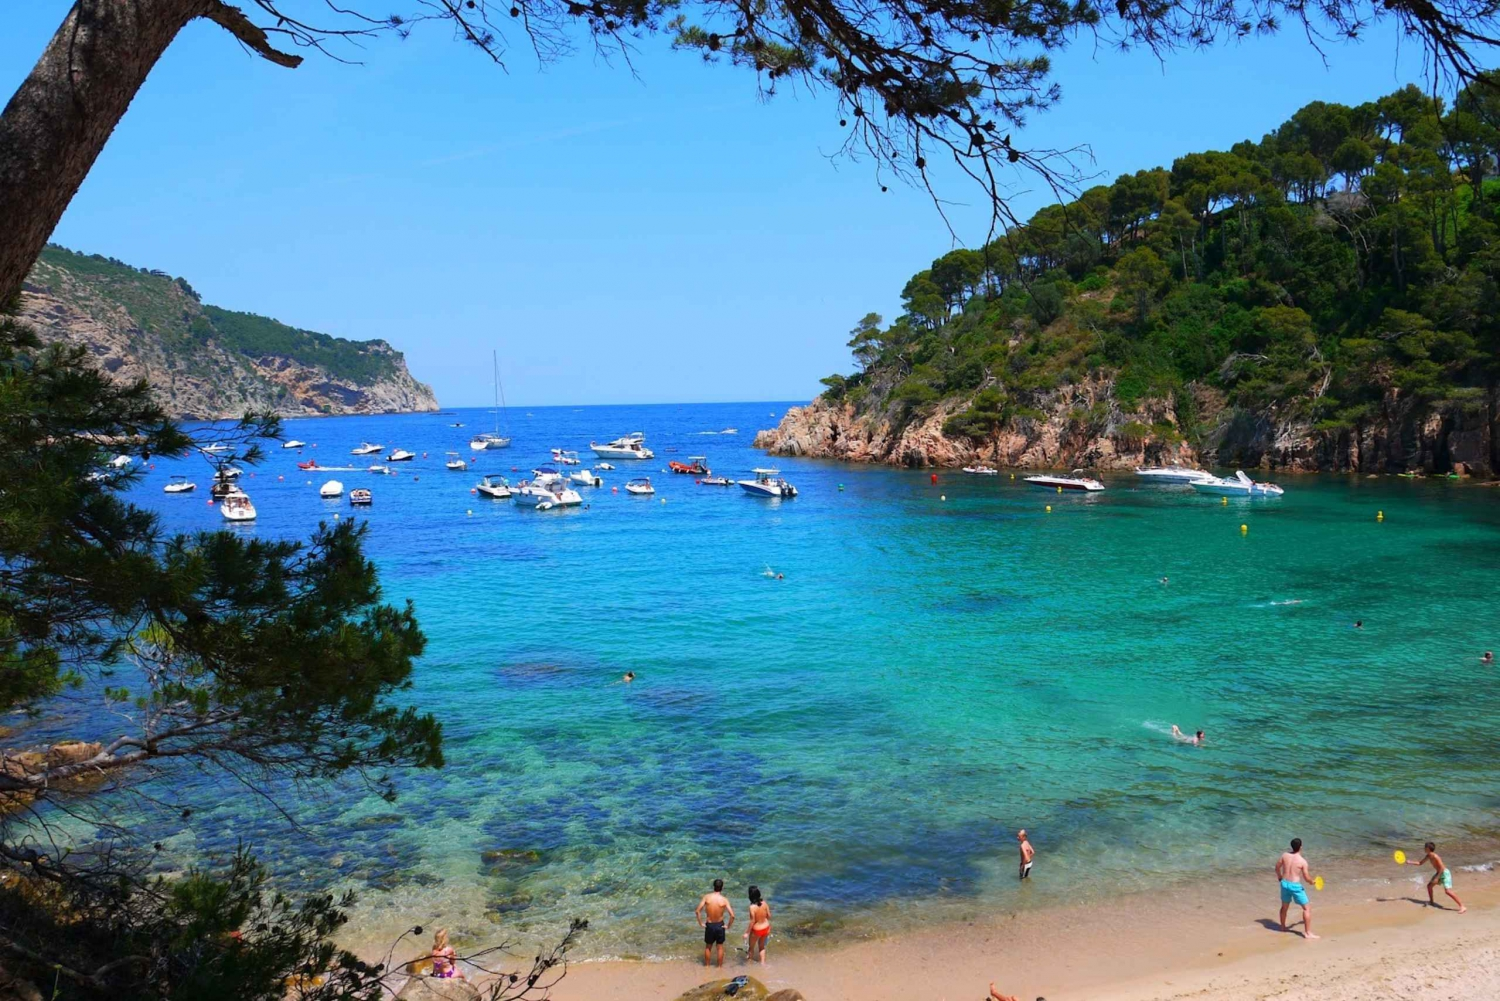 Best of Costa Brava with Boat Ride and Tossa Visit